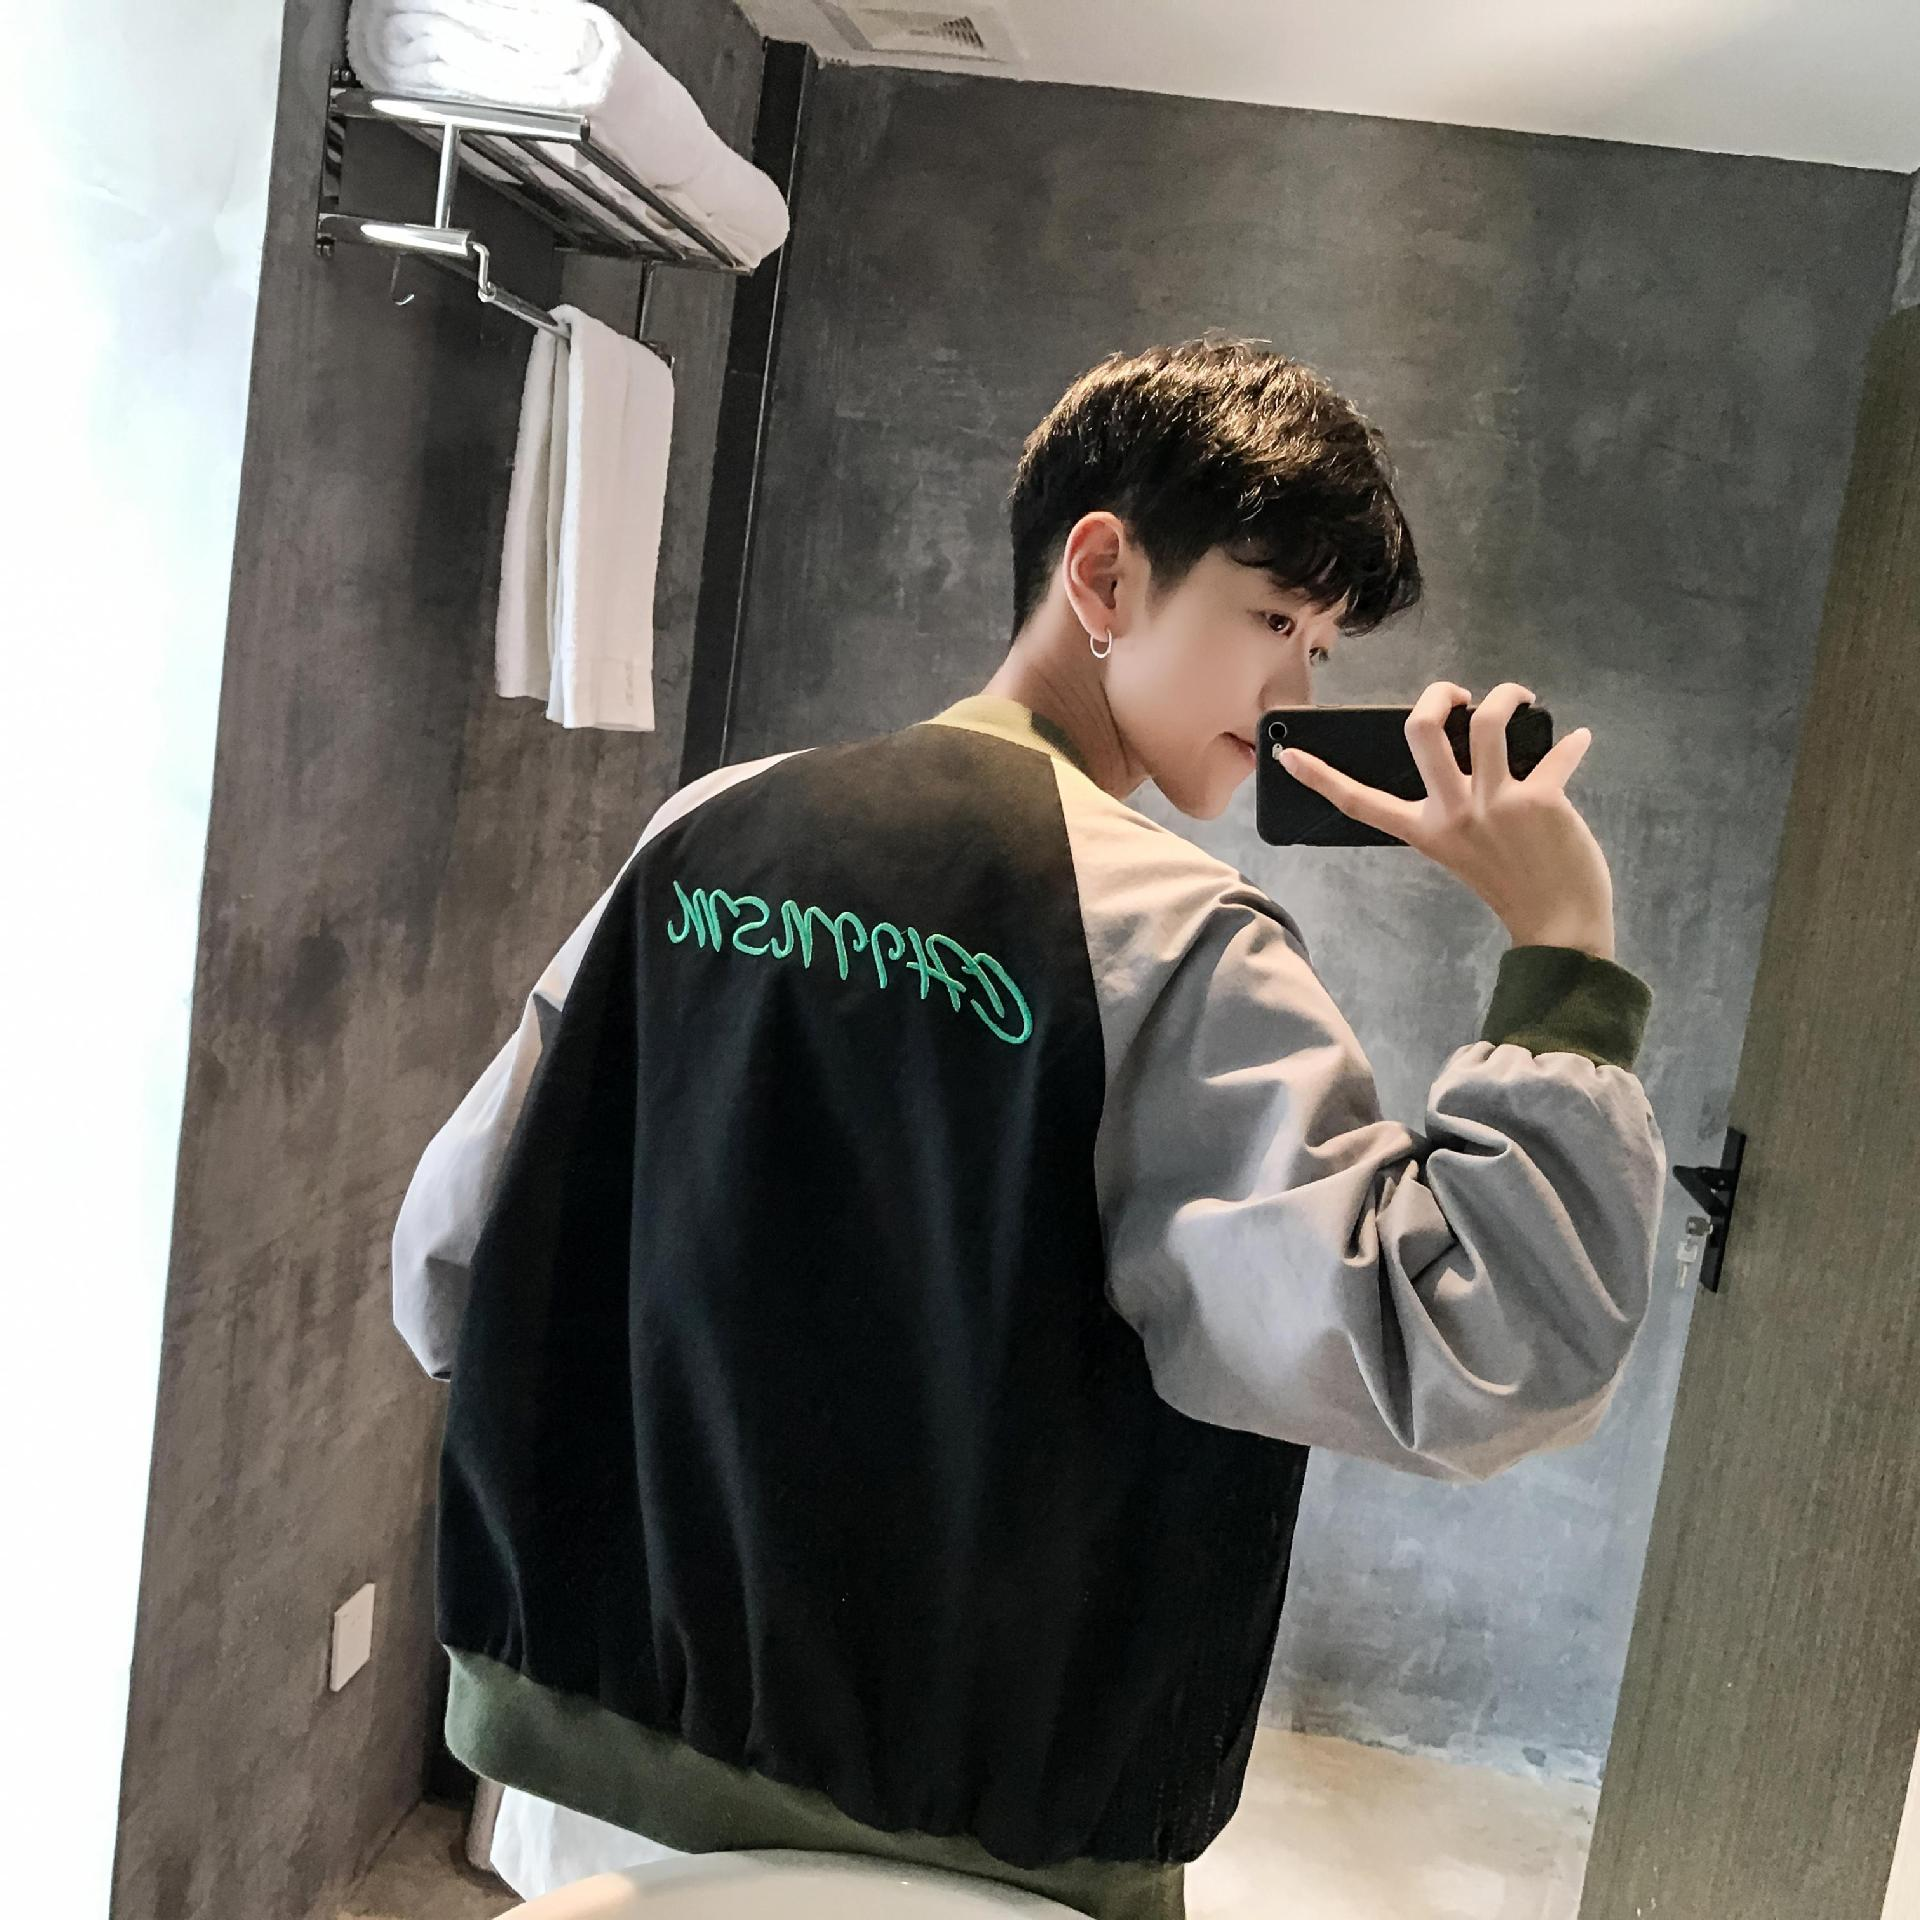 2017 autumn style, Hong Kong style, men's letters, embroidery, collision color, shoulder sleeve, water wash coat